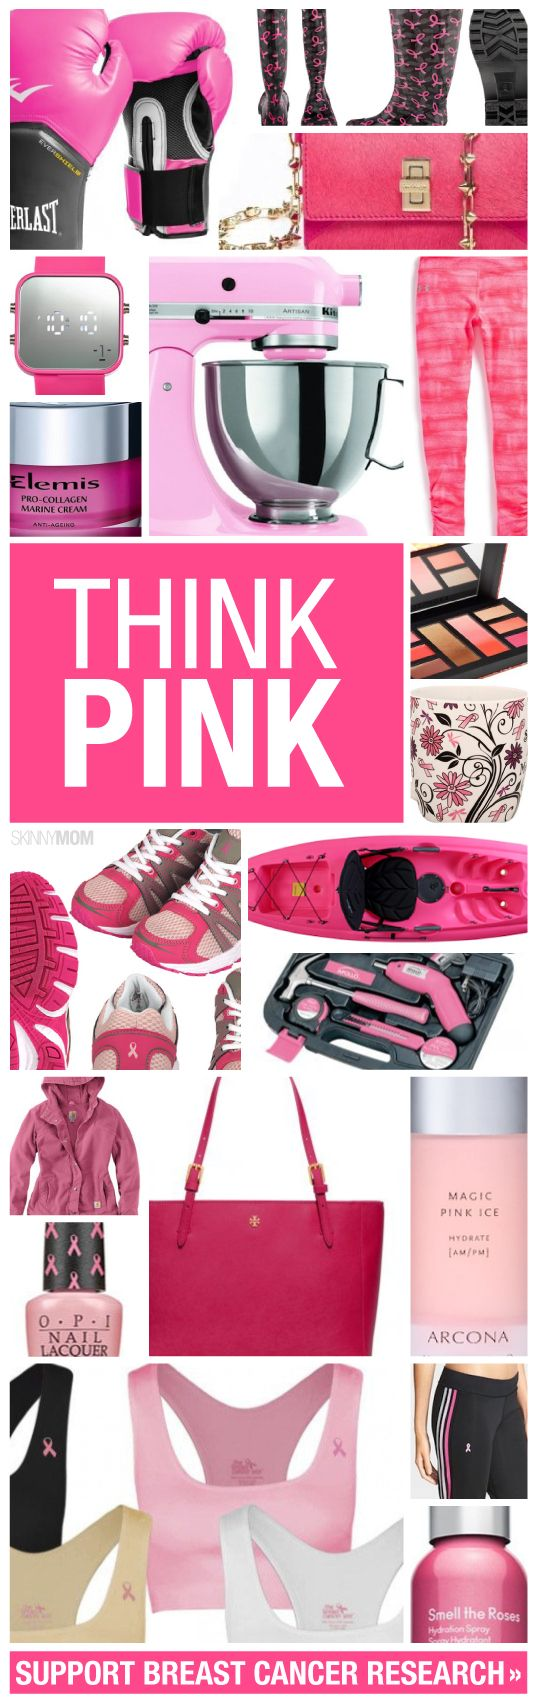 Great pink products supporting breast cancer research.